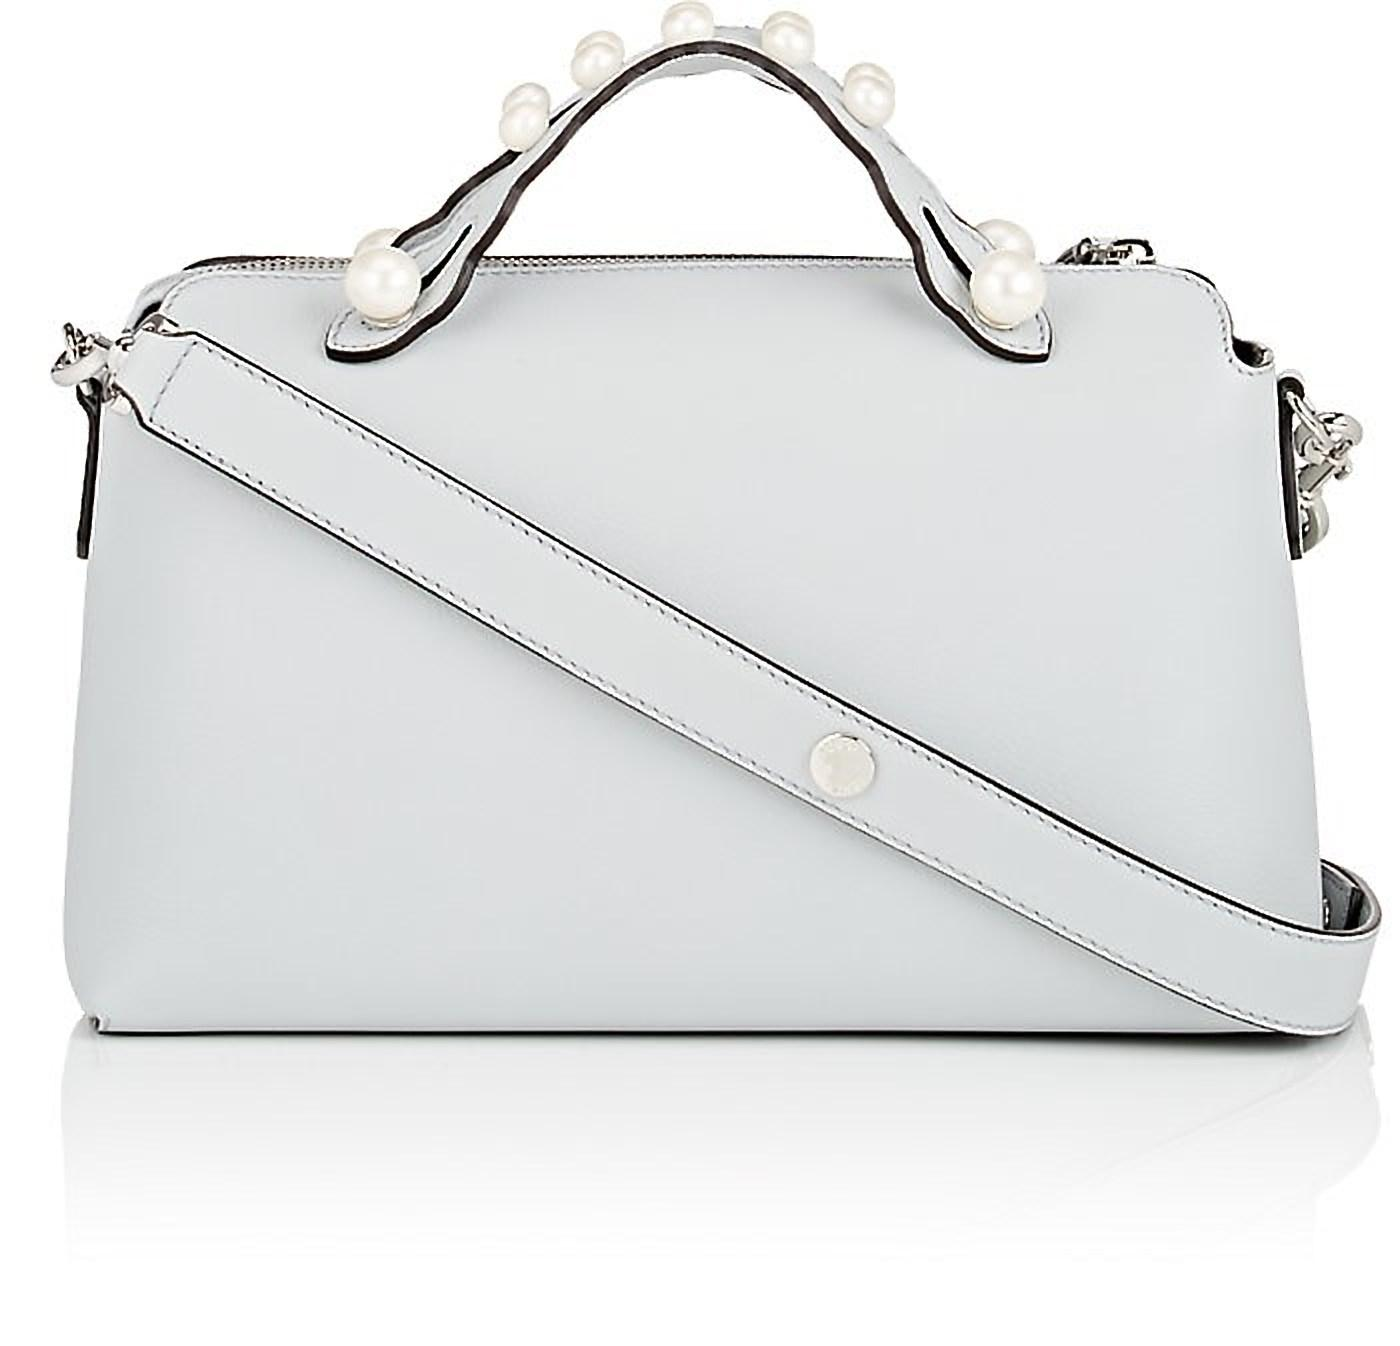 059e23a62a ... best fendi by the way pearl crossbody tote shoulder bag.